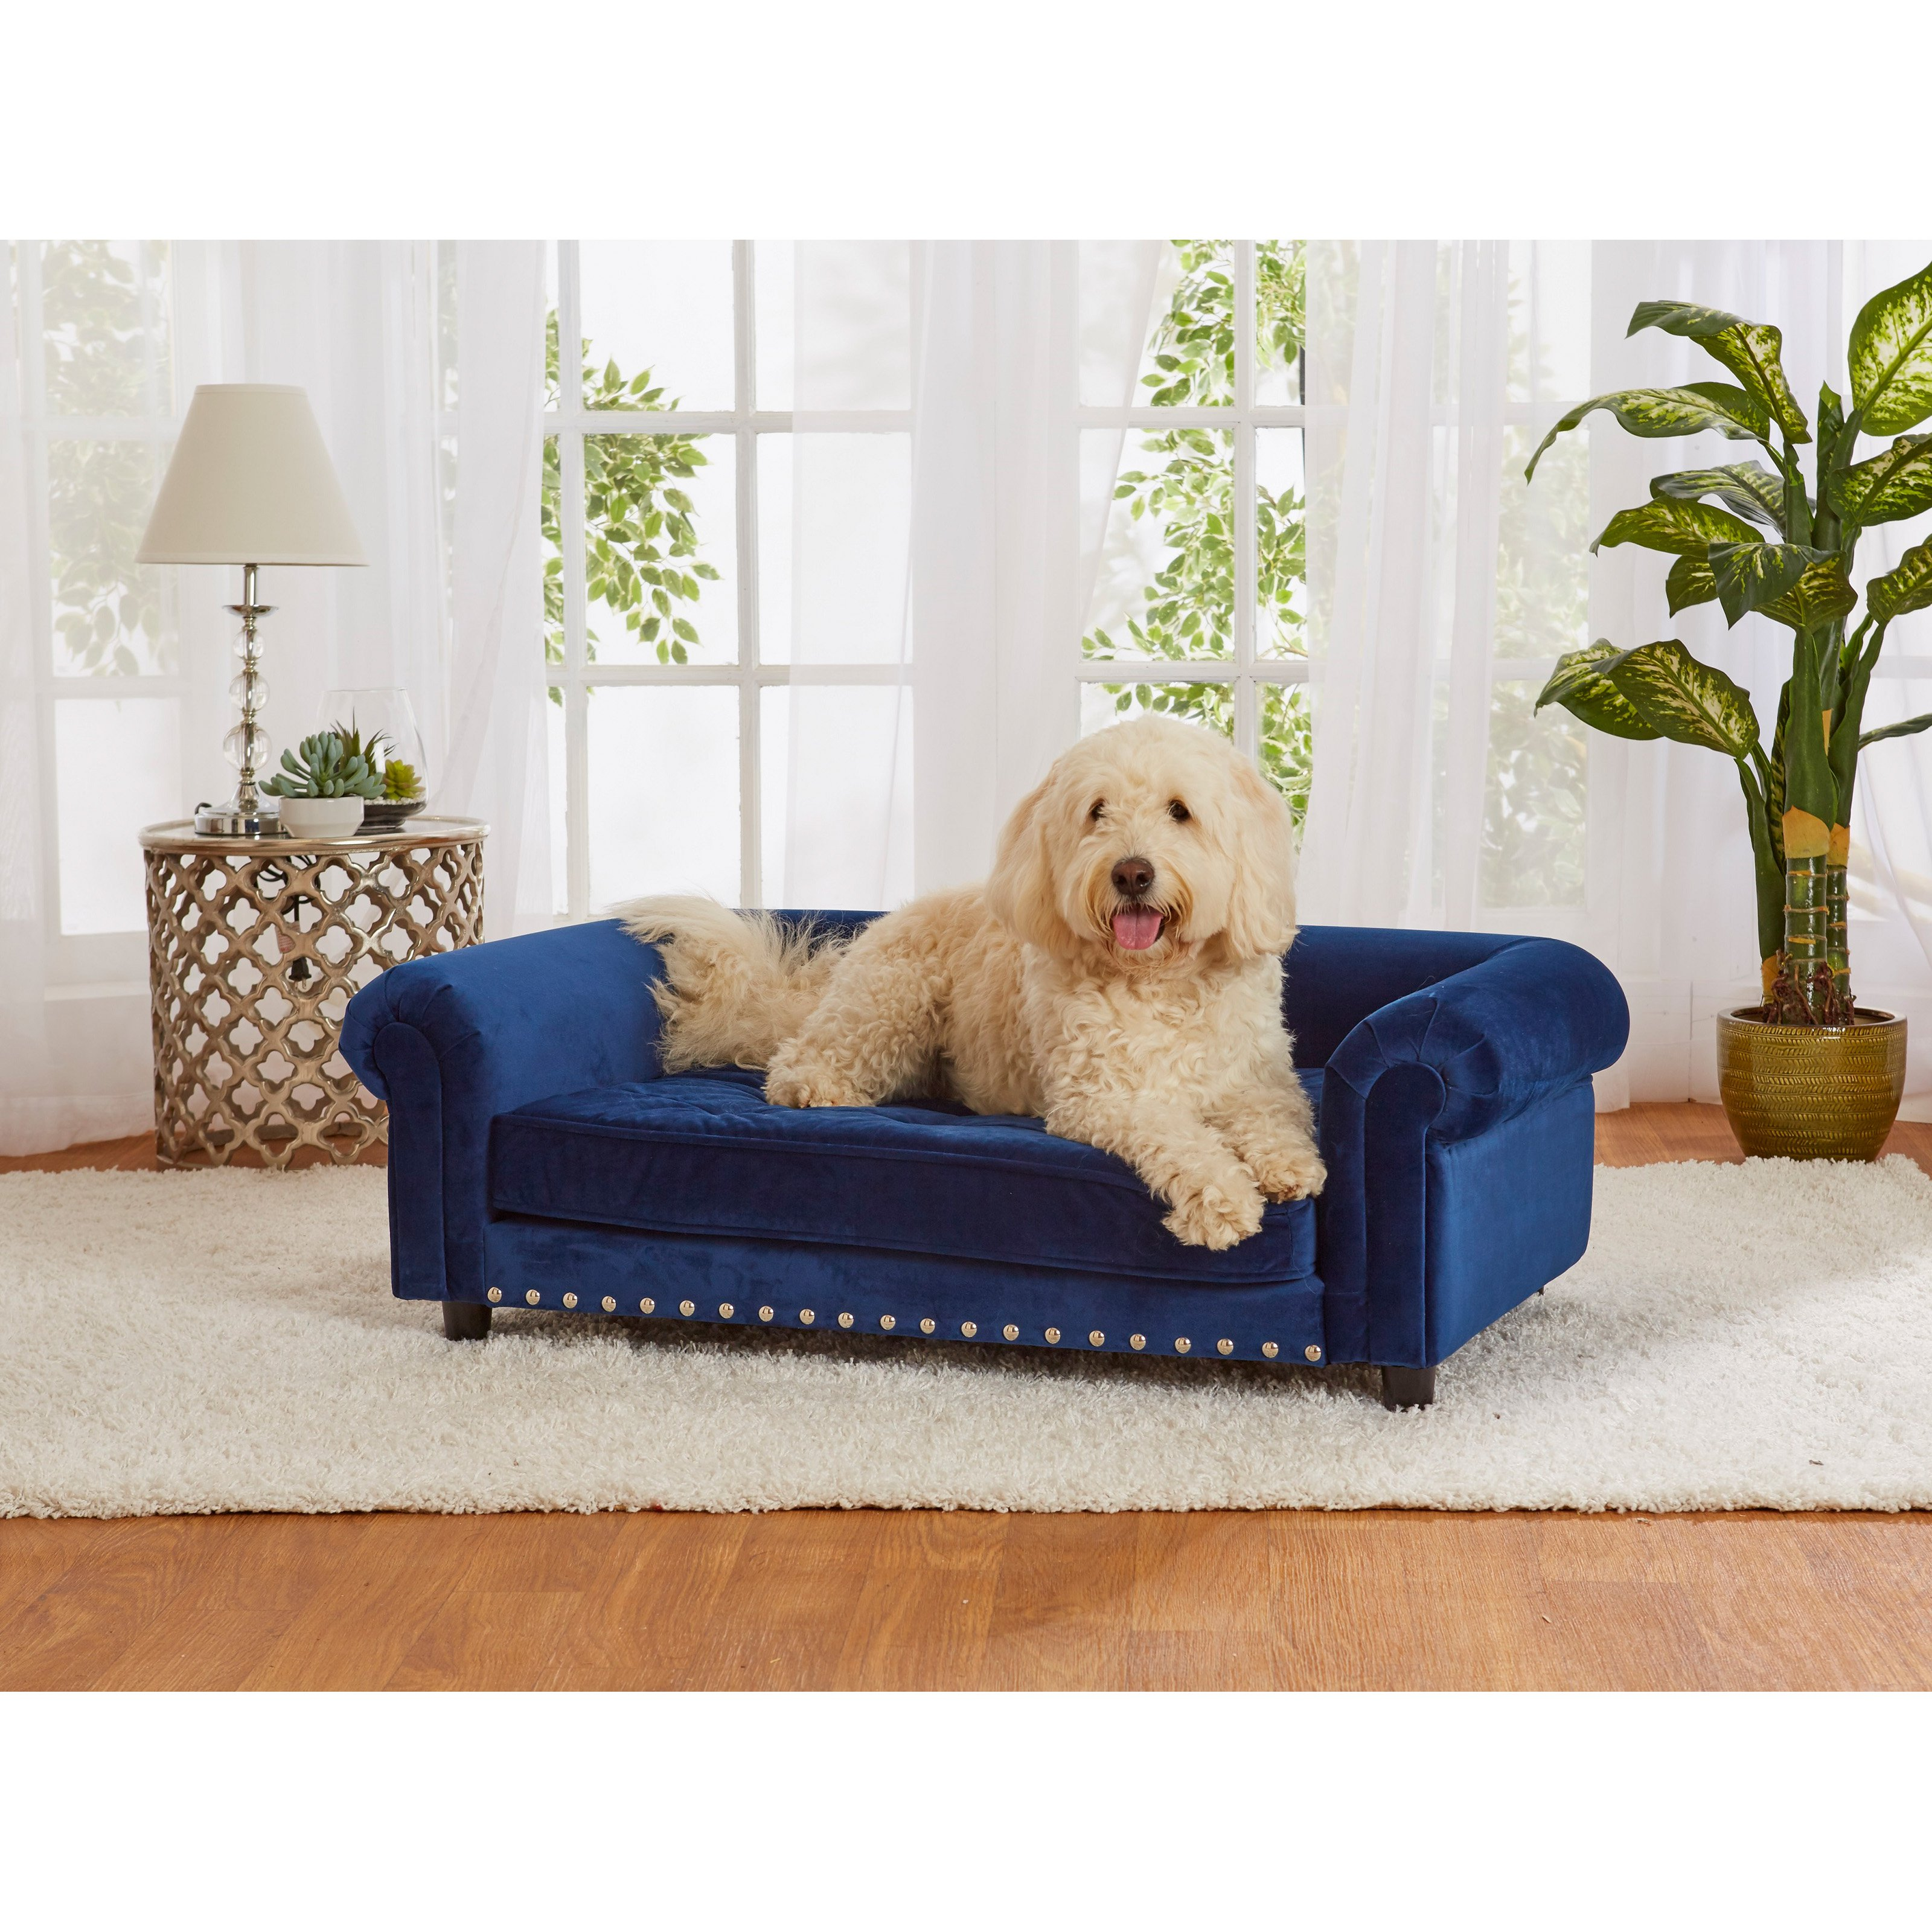 Enchanted Home Pet Manchester Velvet Tufted Dog Sofa With Cushion